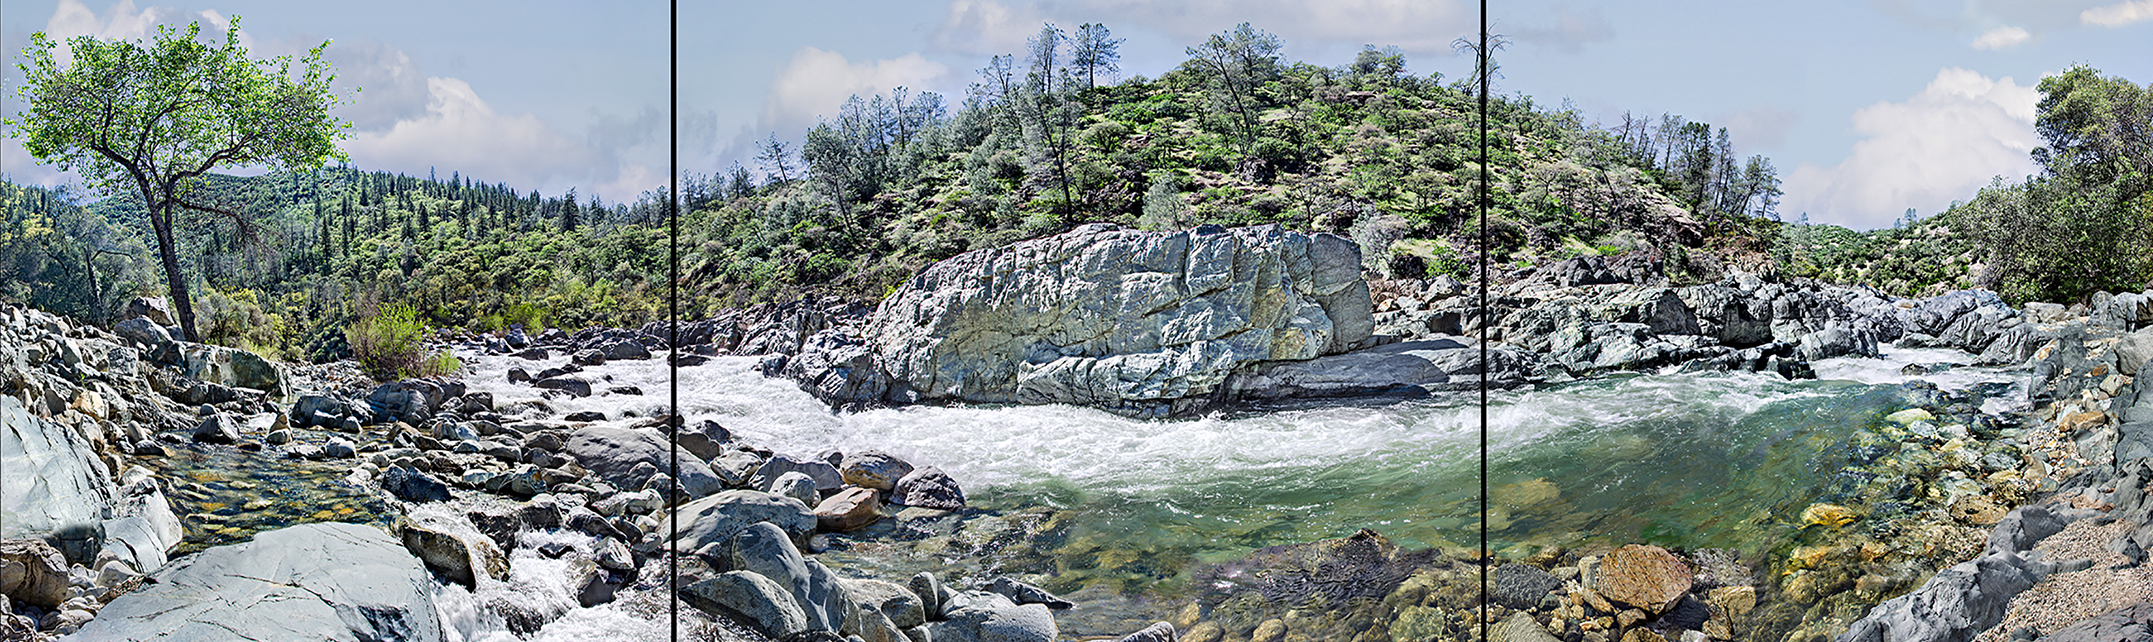 The Yuba River flowing around the bend along the Buttermilk Trail at the South Yuba State Park